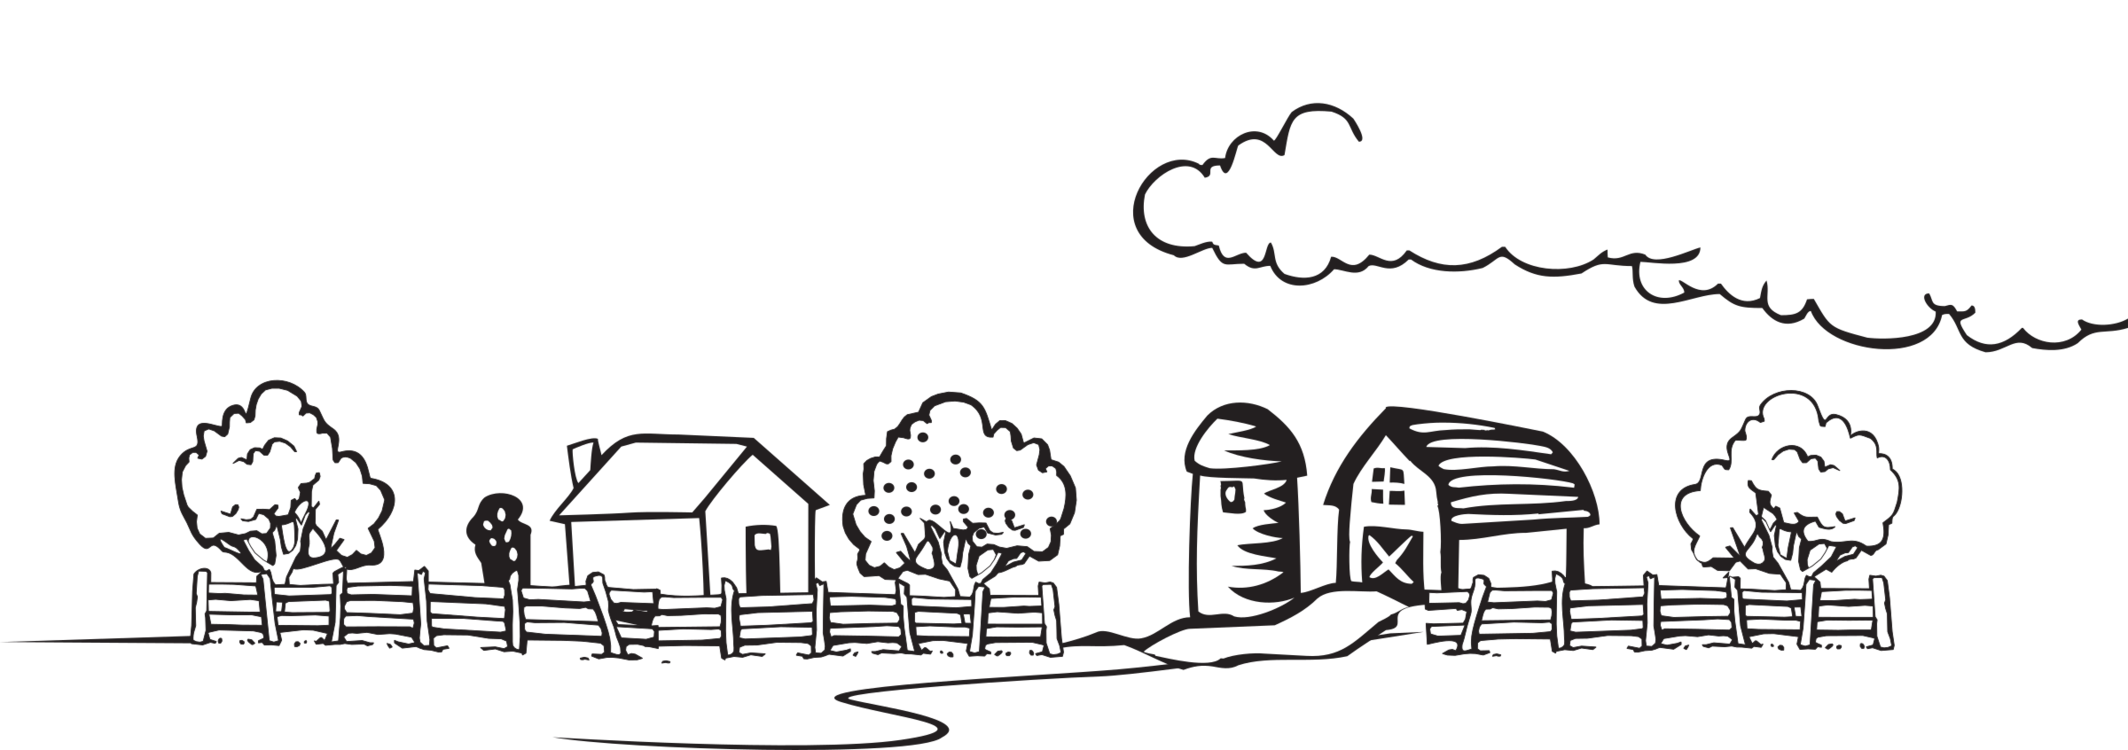 Ranch clipart black and white image transparent library Art,Monochrome Photography,Text Clipart - Royalty Free SVG ... image transparent library